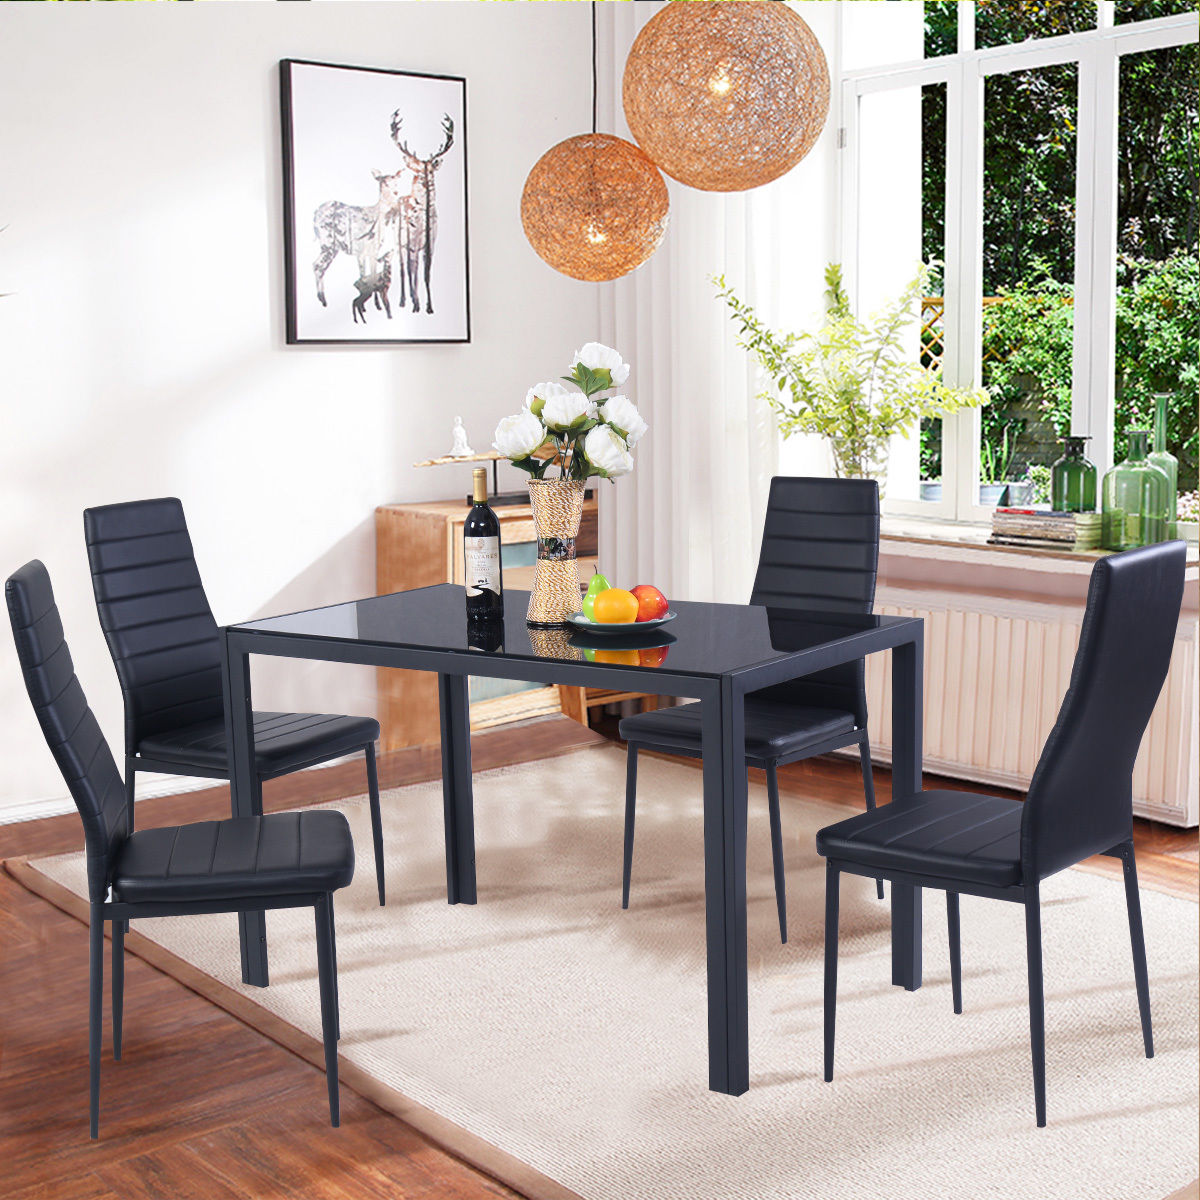 kitchen table sets small refrigerator costway 5 piece dining set glass metal and 4 chairs breakfast furniture walmart com